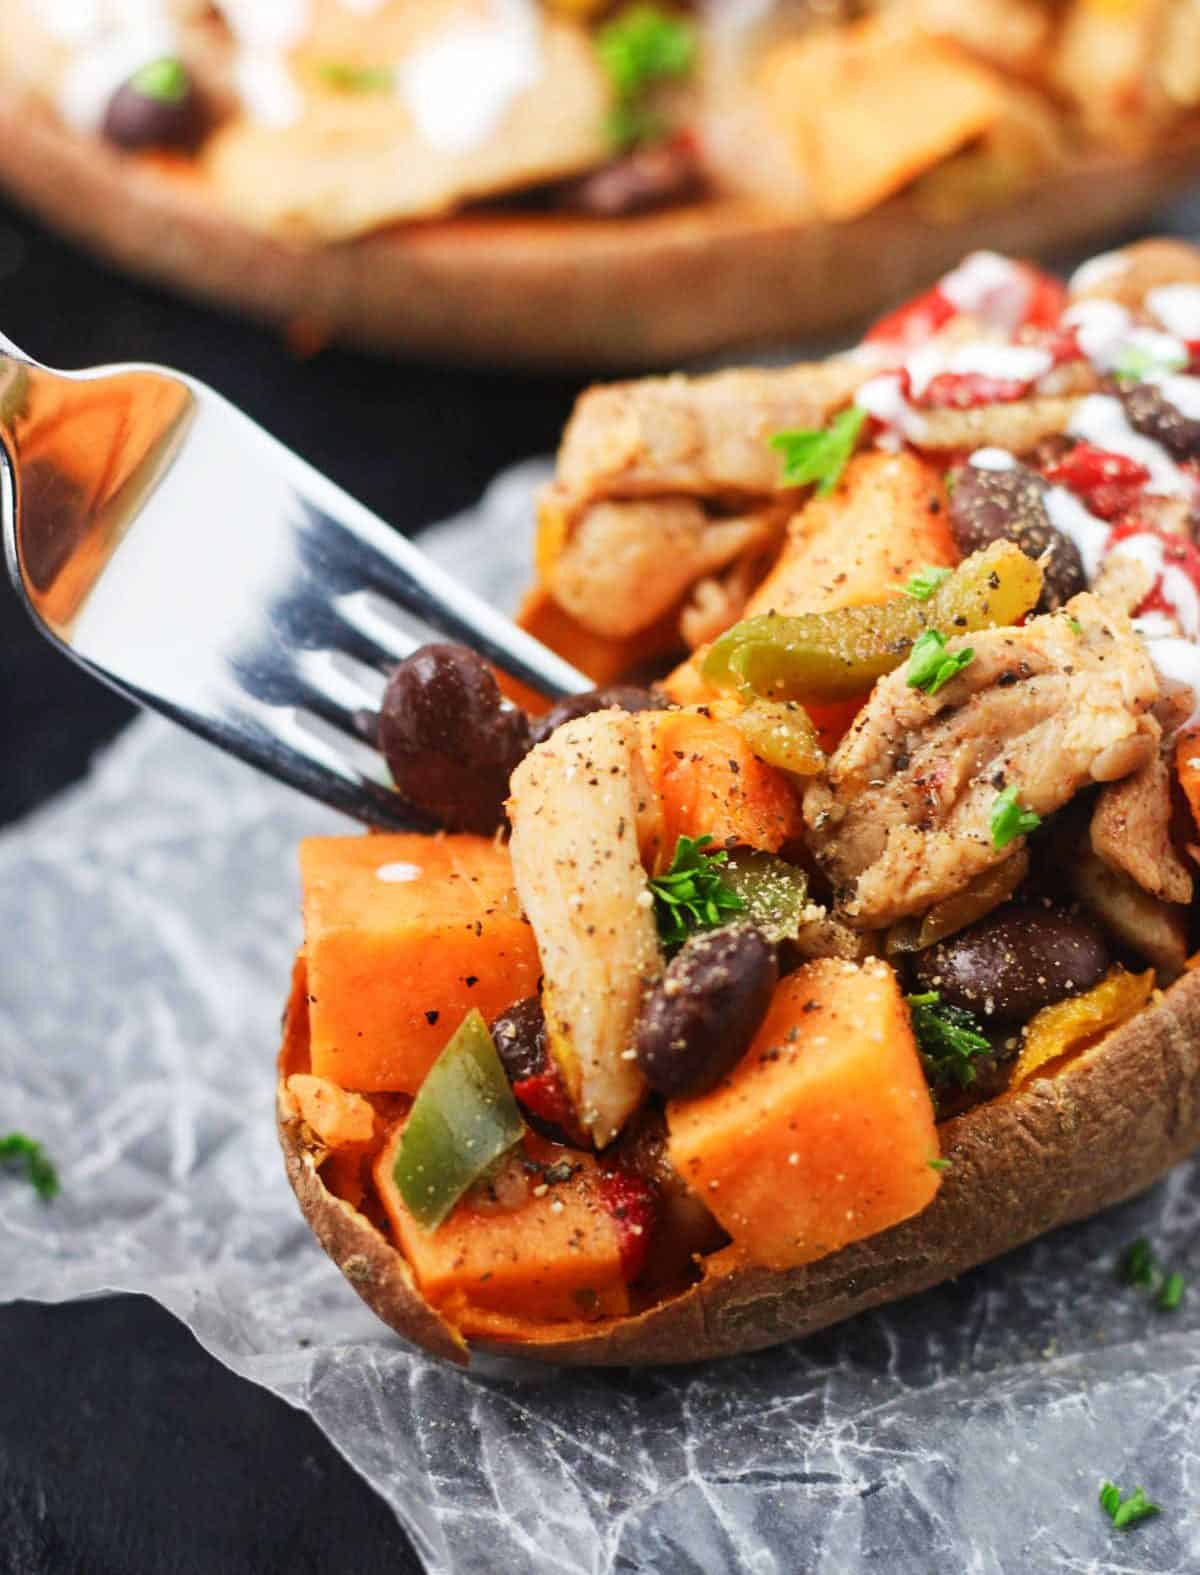 These Chicken Fajita Stuffed Sweet Potatoes allow you to enjoy all of the flavors of a chicken fajita at a fraction of the carbs! www.itscheatdayeveryday.com